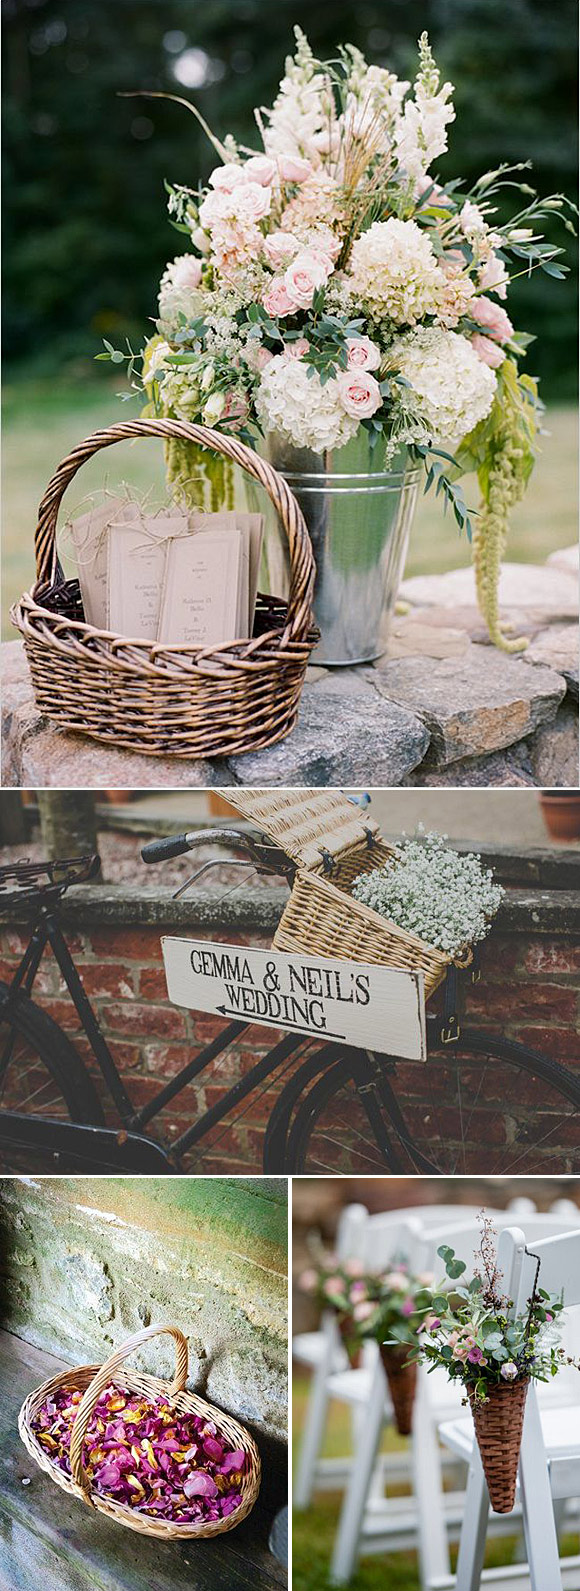 Cestas ideas para decorar bodas y fiestas en el campo - Ideas para decorar fiestas ...